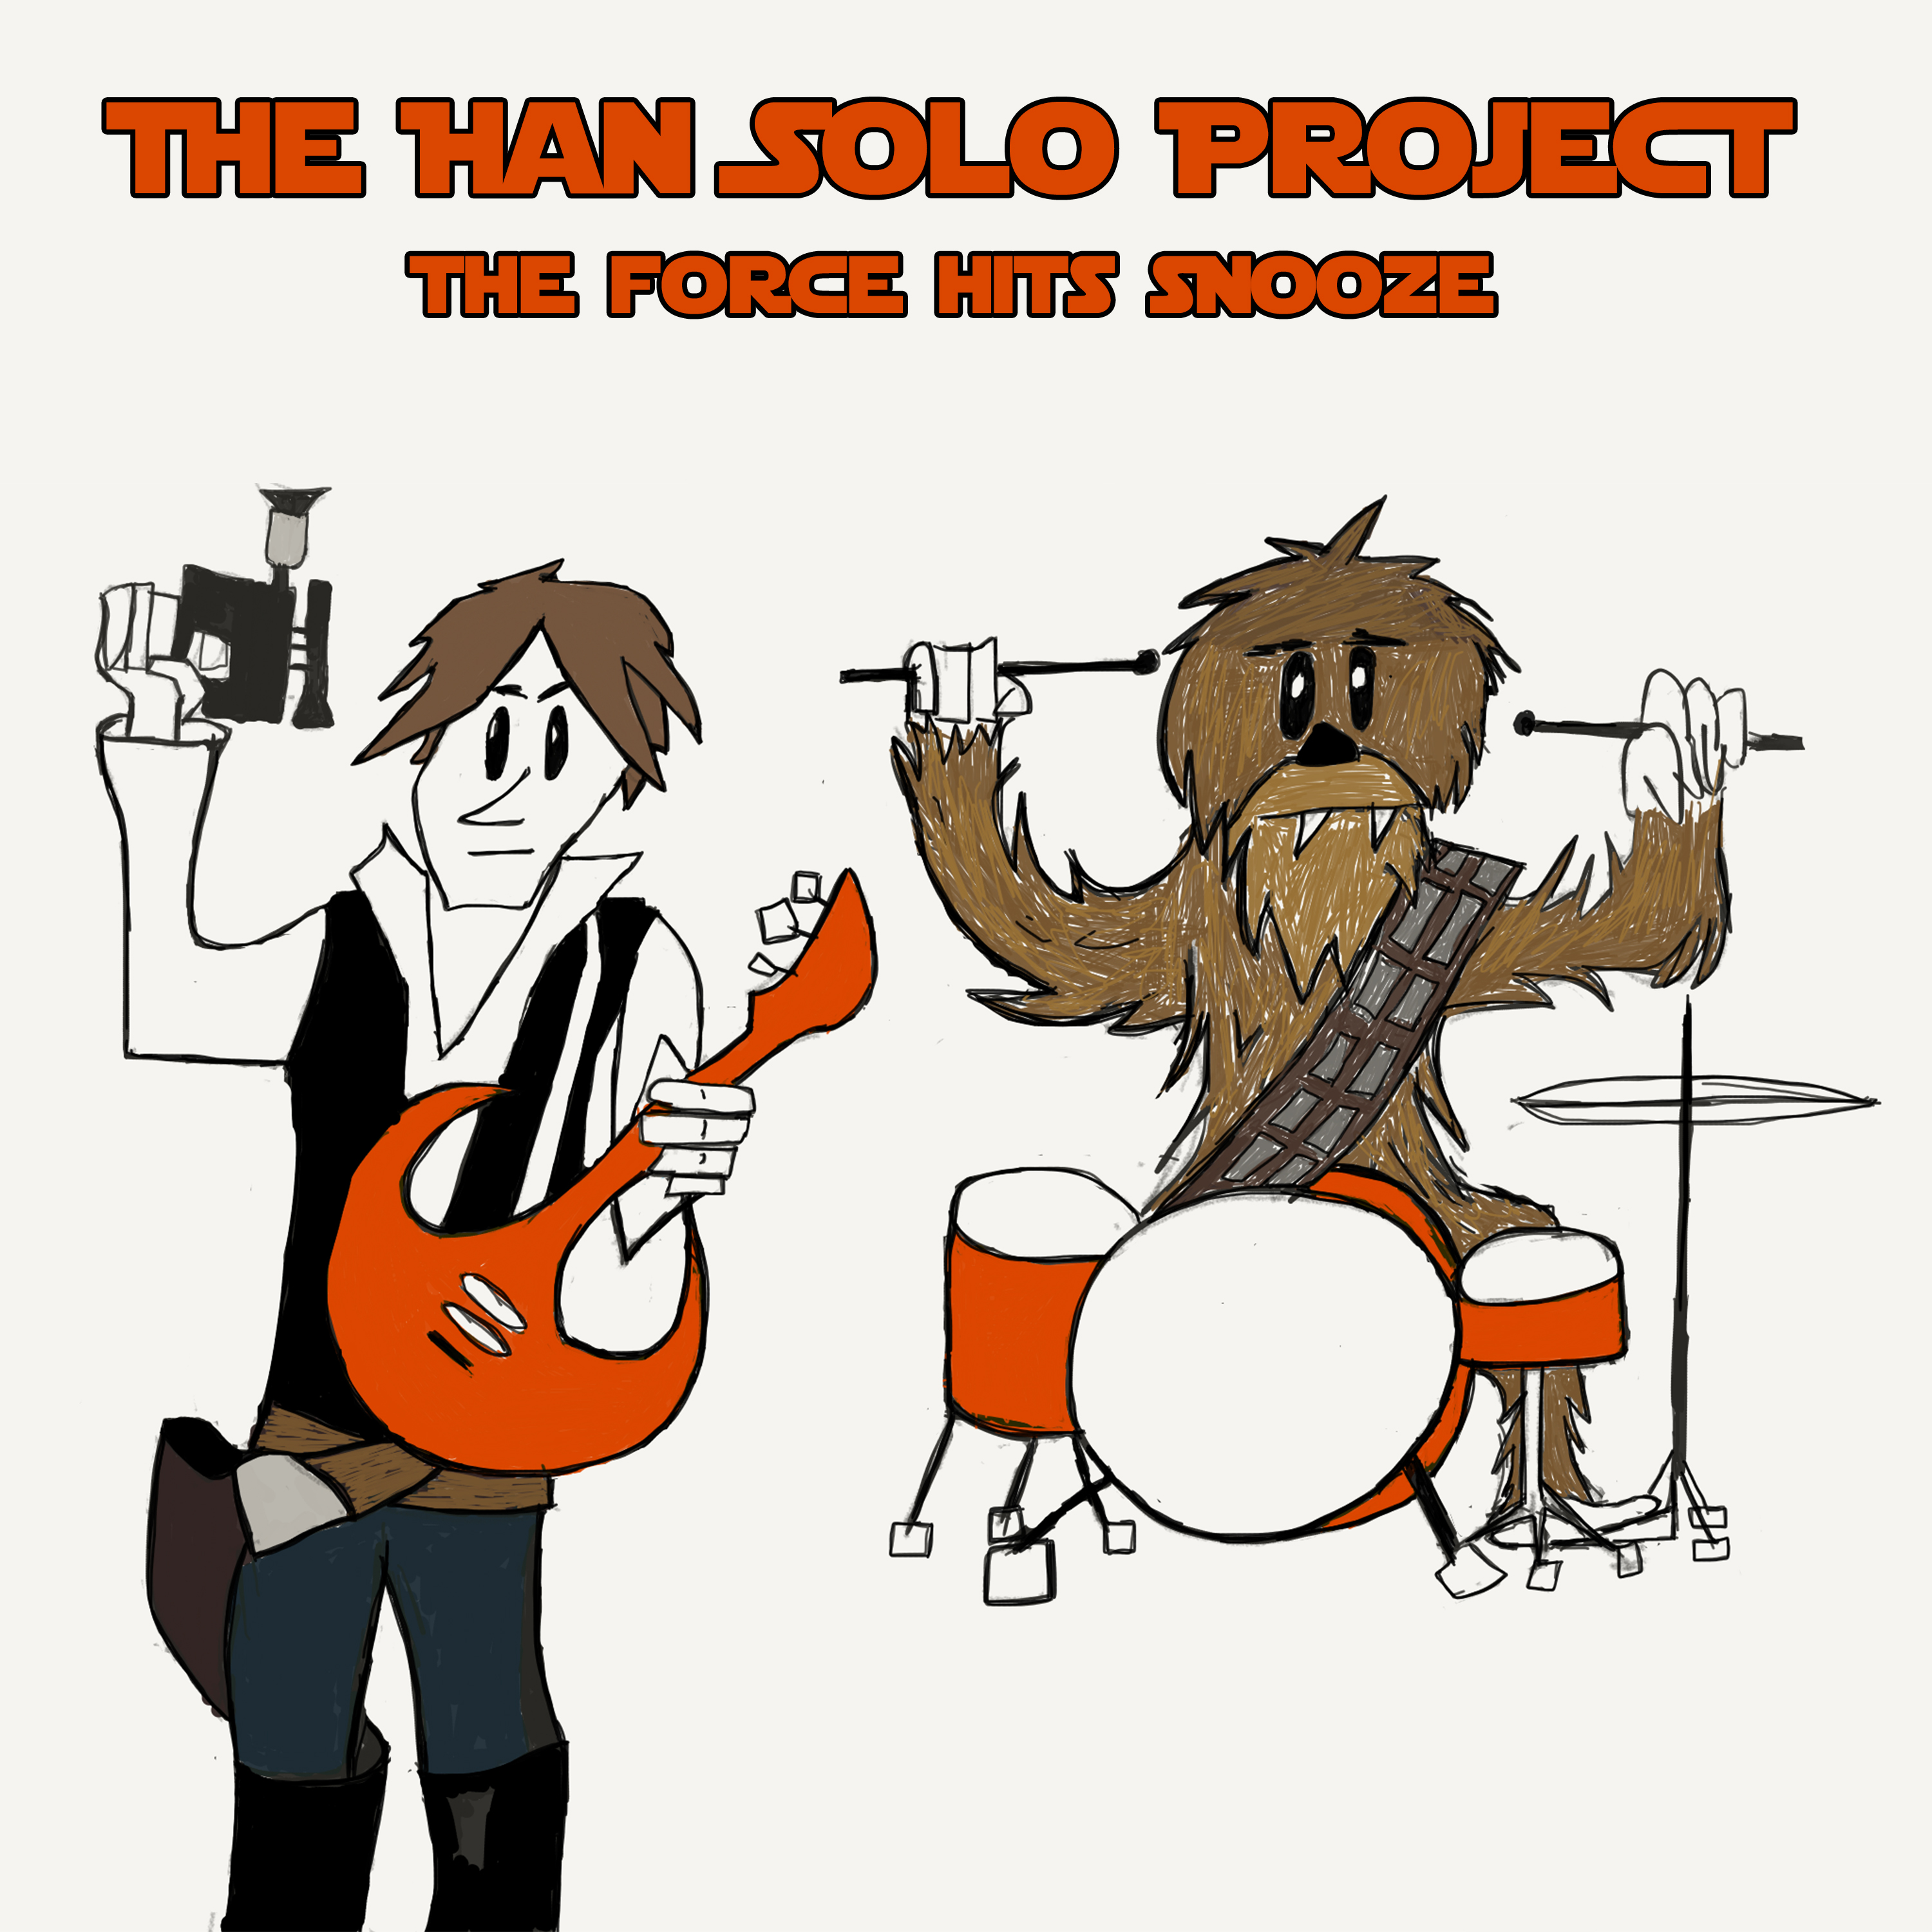 The Han Solo Project